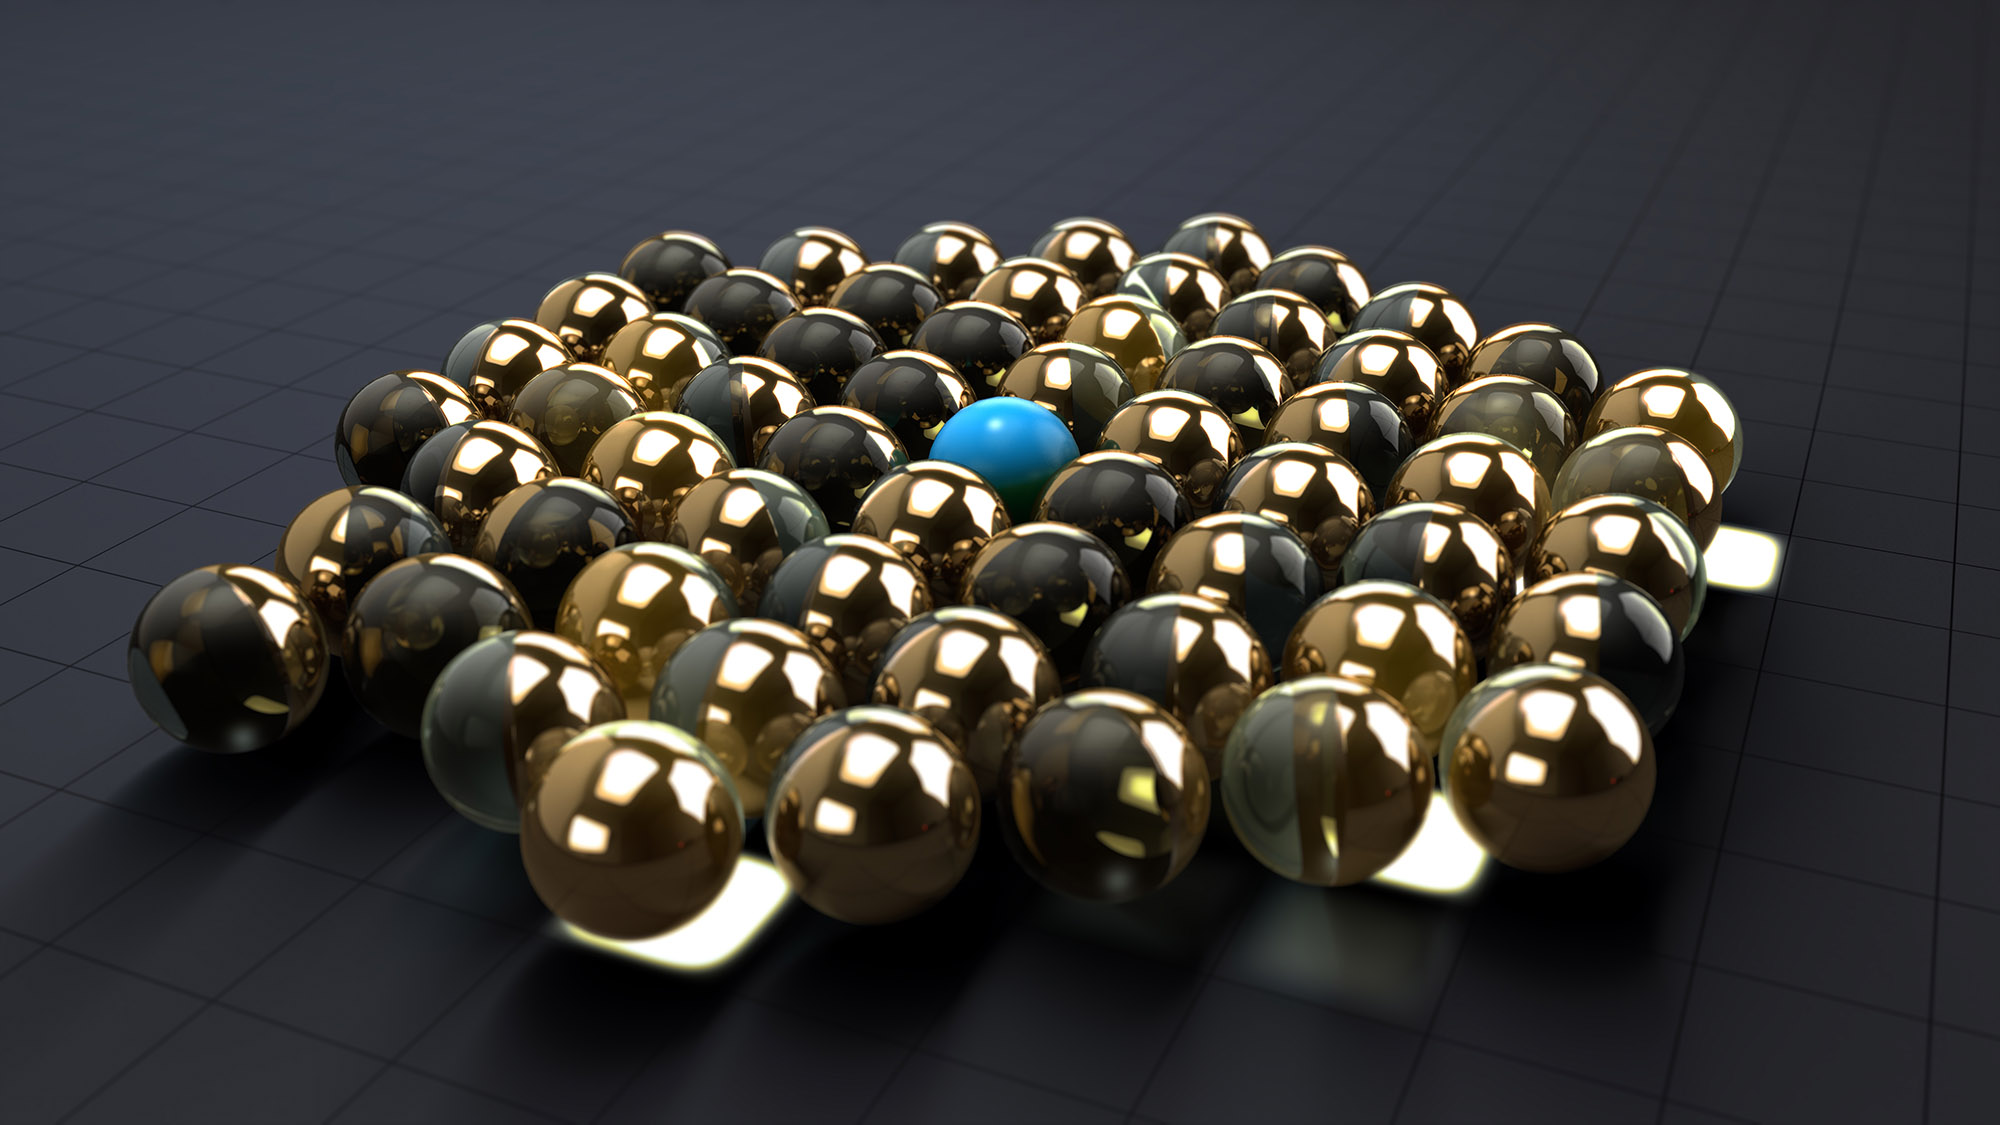 gold and glass spheres moves as one to transport a blue sphere